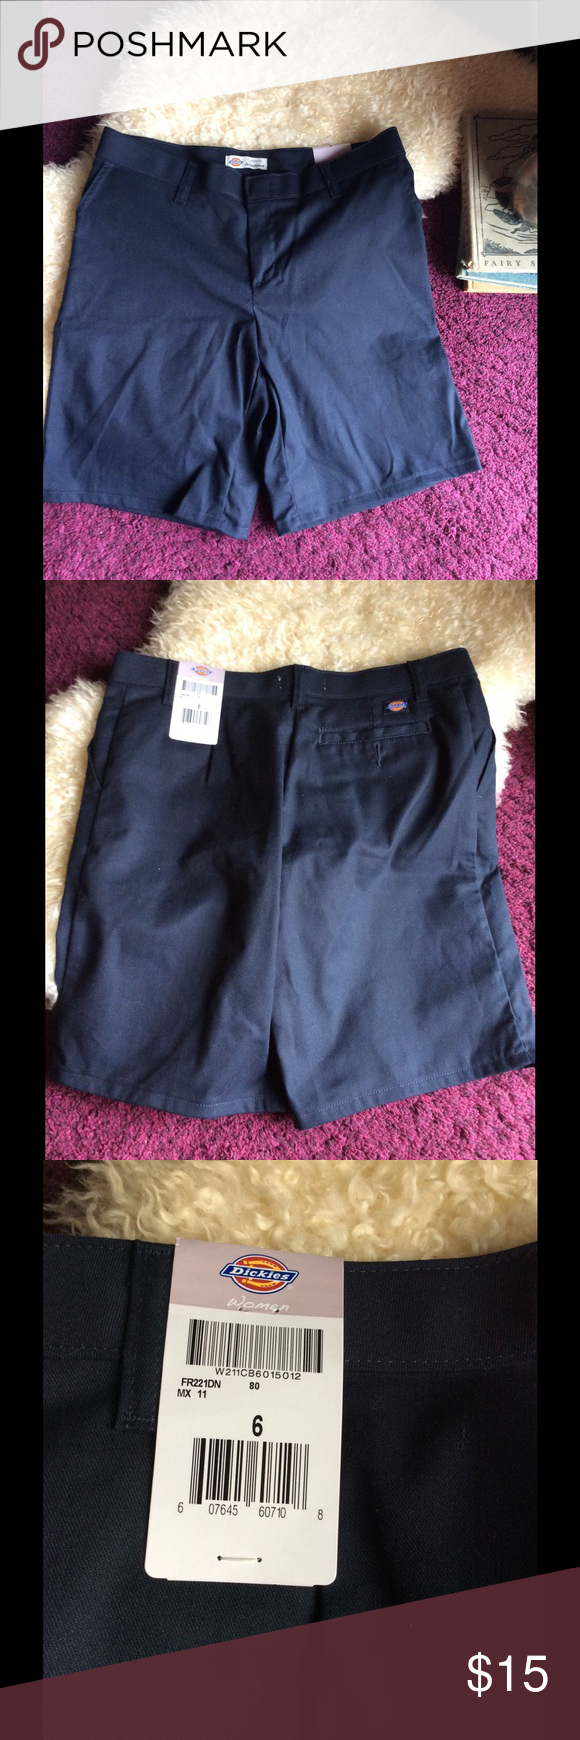 Women's dickies navy blue shorts relaxed fit NWT NWT Women's dickies shorts relaxed fit size 6. No flaws! I view all offers and questions. Get it NOW before it's gone!!! Dickies Shorts